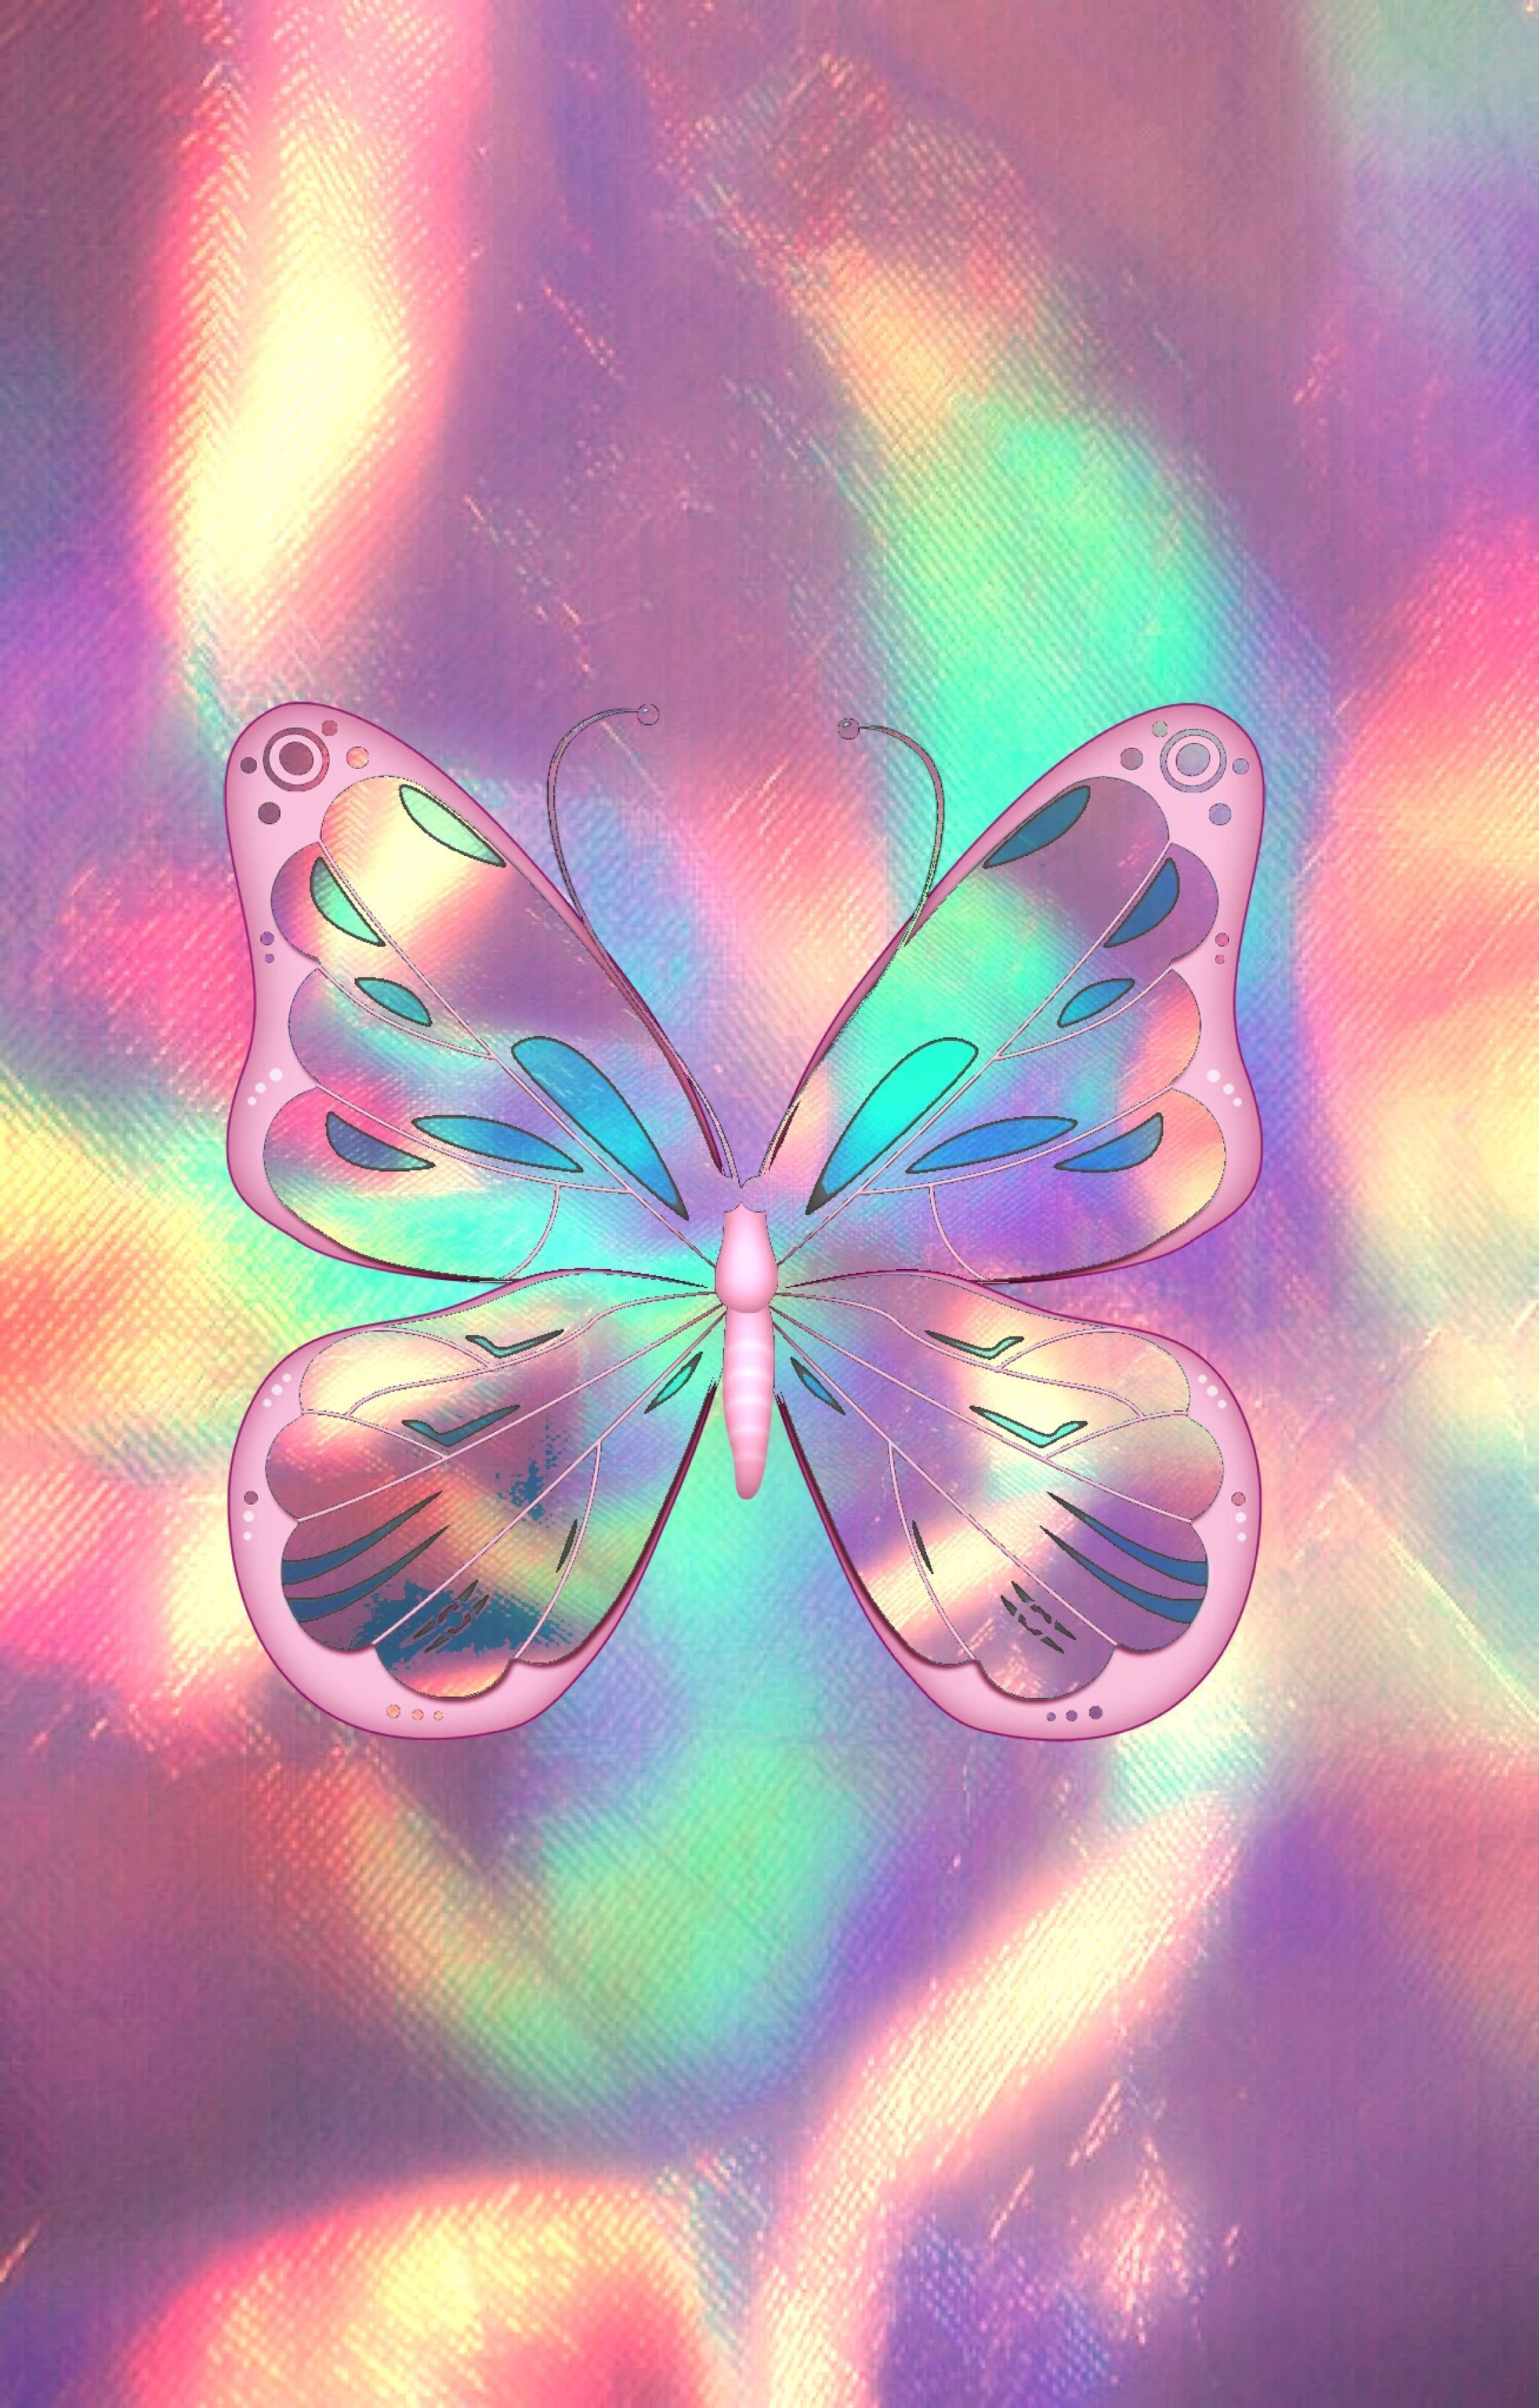 Neon Pink Butterfly Wallpapers - Top Free Neon Pink ...